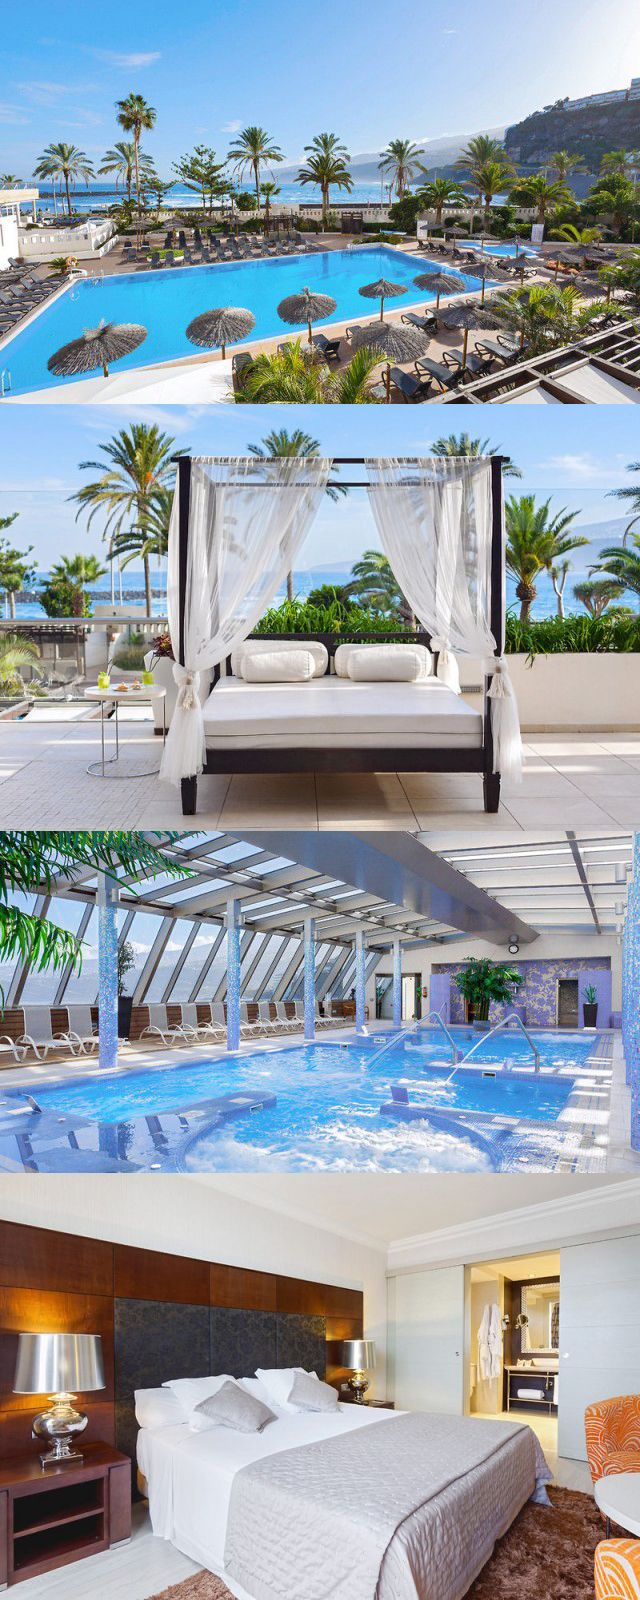 20.01.2016 - PAUSCHALDEAL  #vacation #holiday #tenerife #pool #luxury